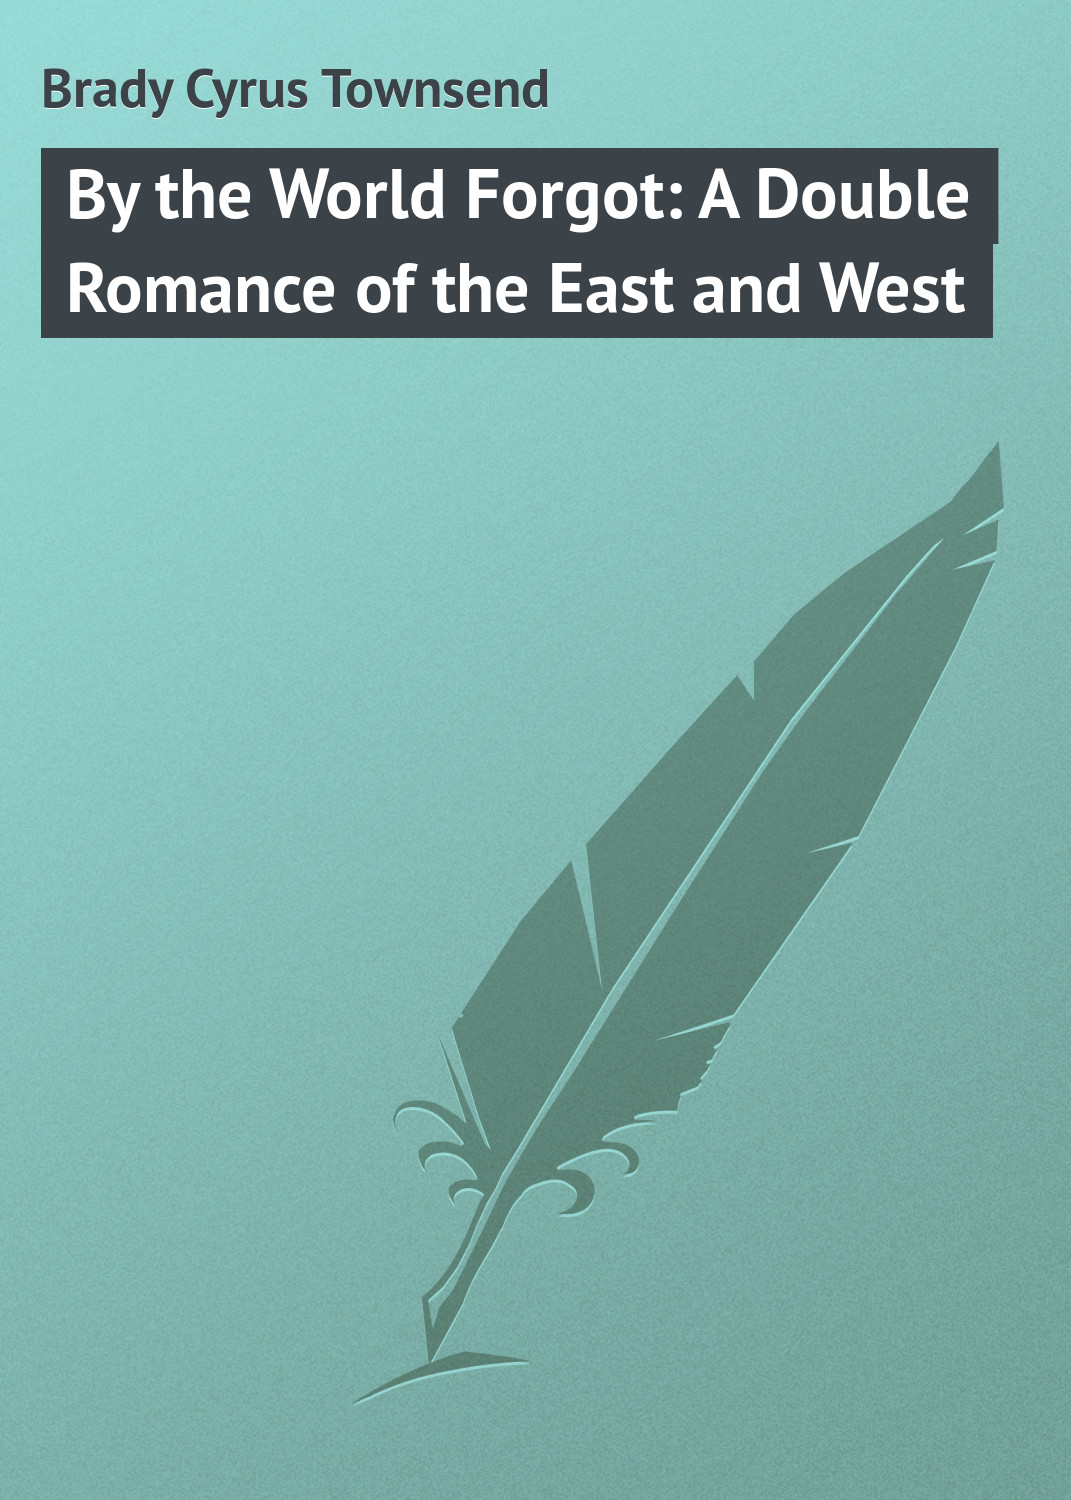 Brady Cyrus Townsend By the World Forgot: A Double Romance of the East and West east of the chesapeake